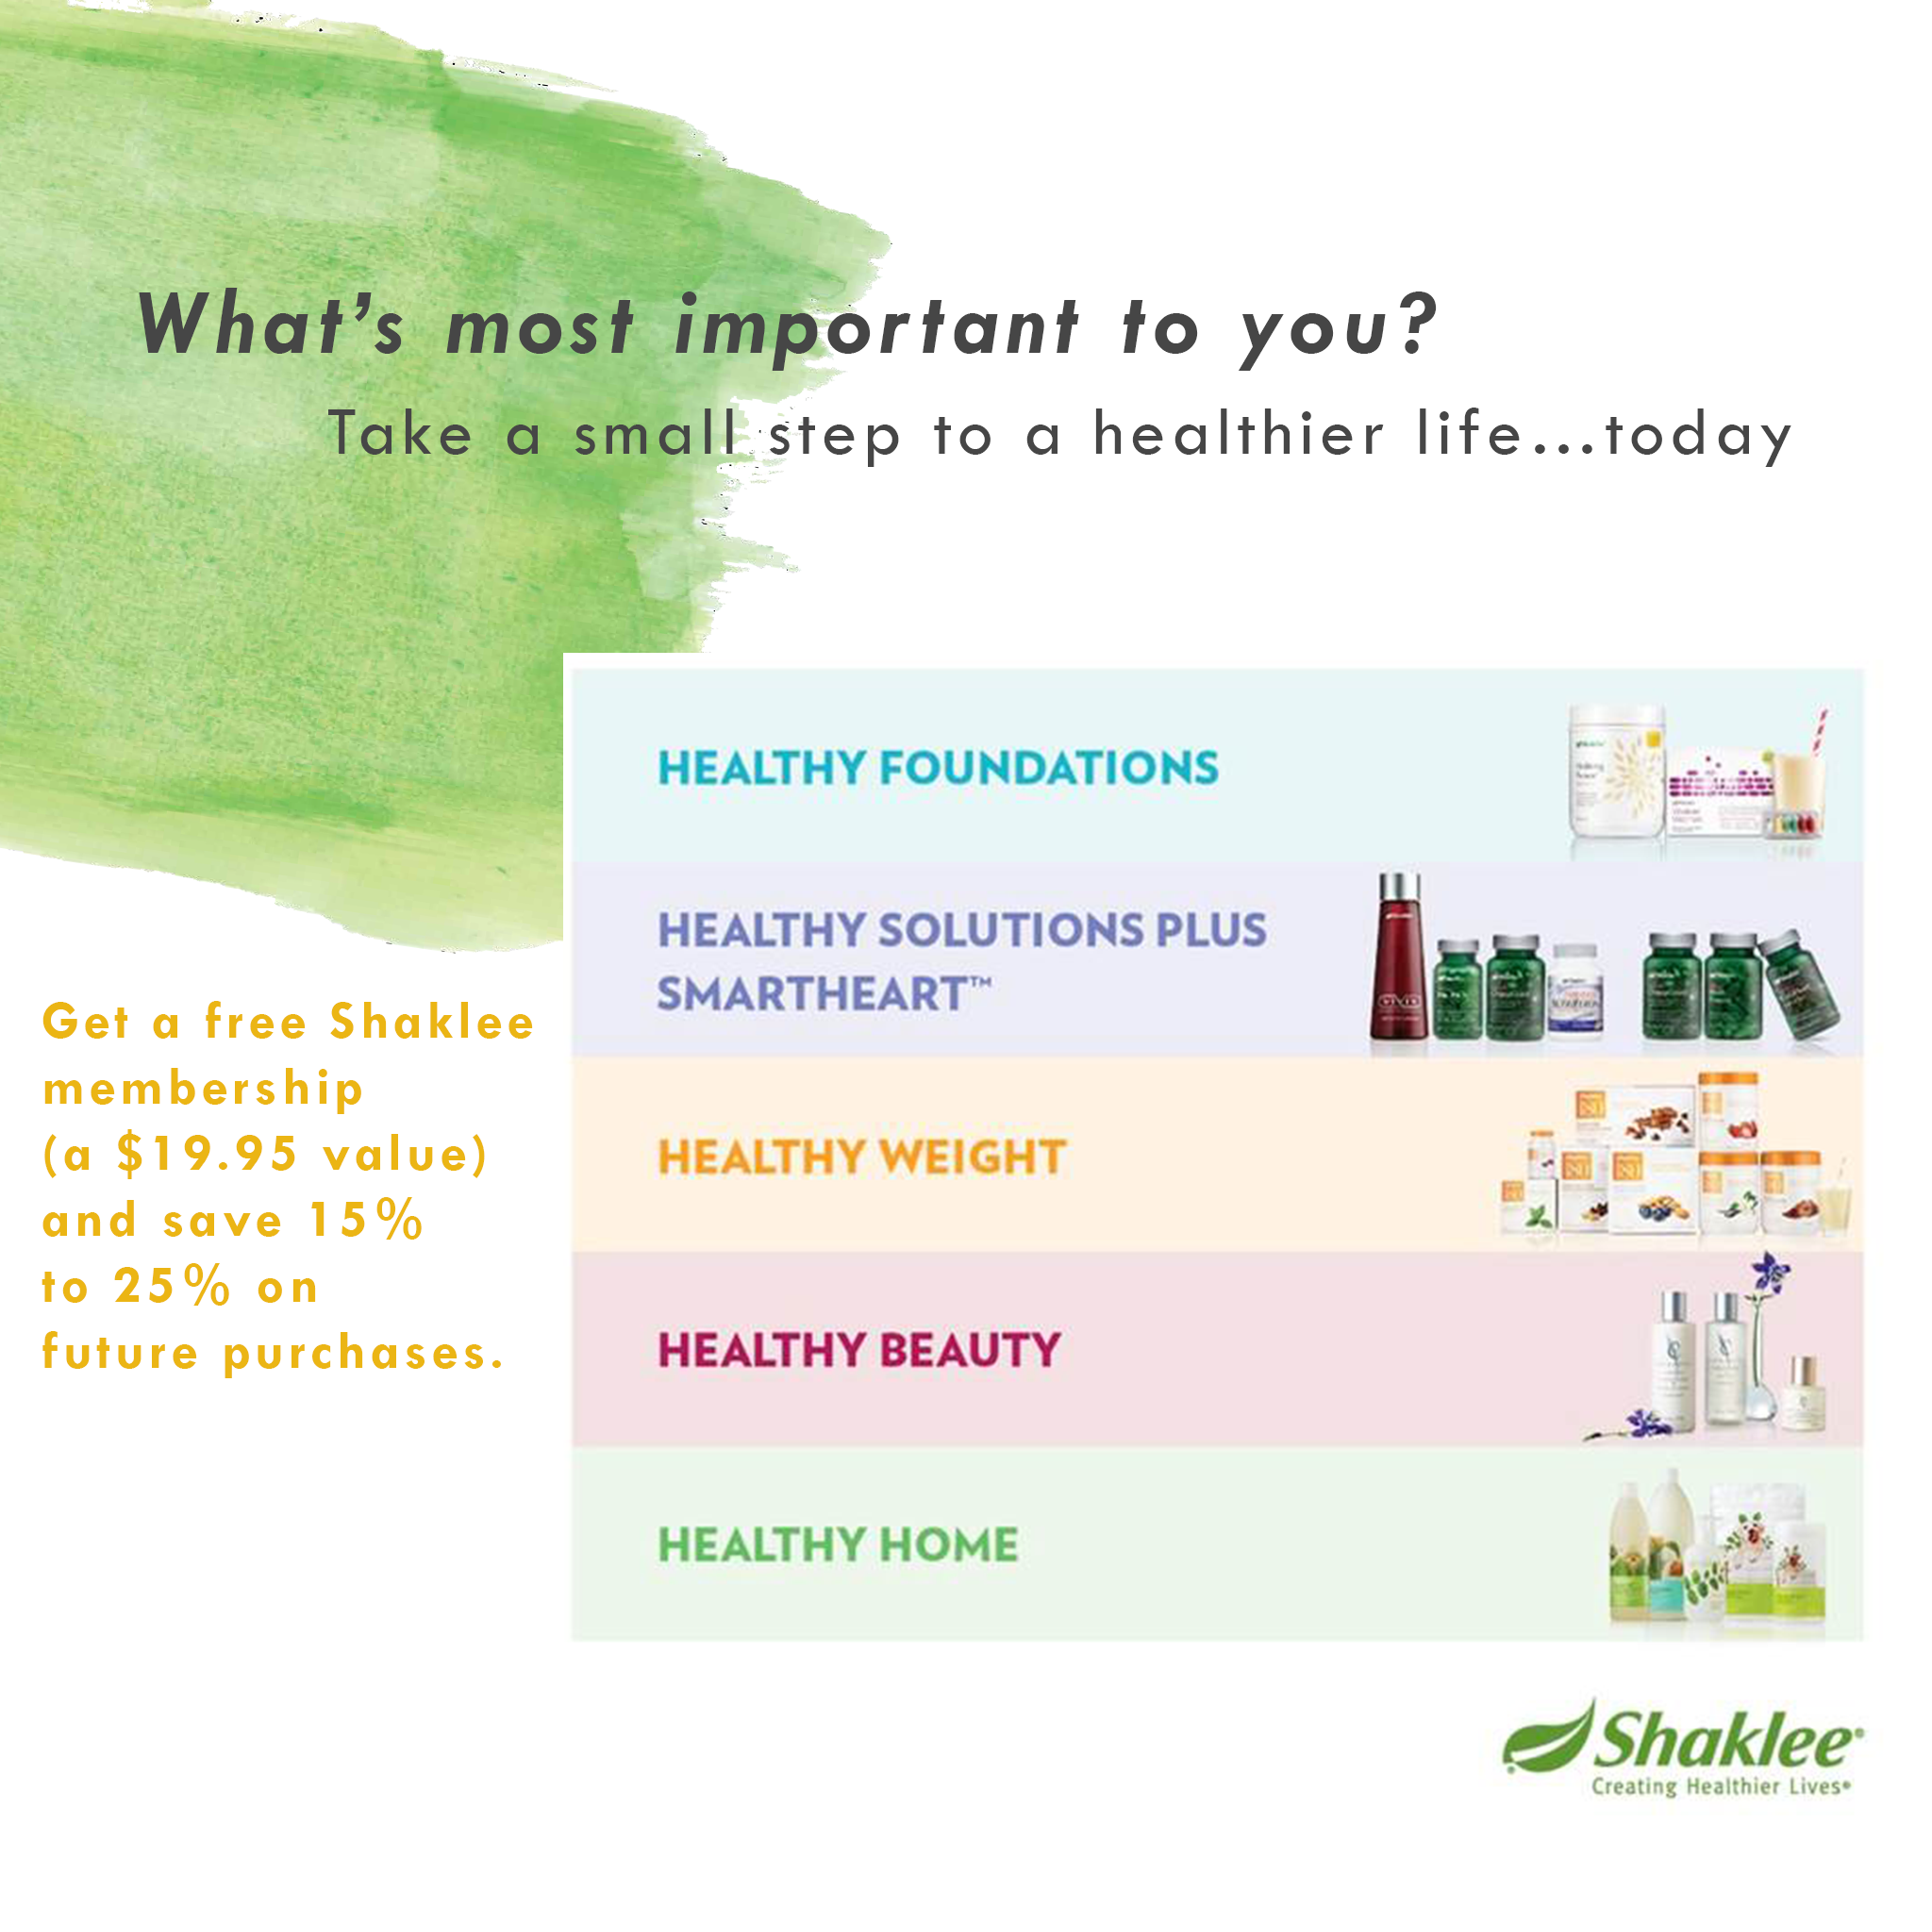 What's most important to you? Take a small step to a healthier life....today!!!  #Shaklee #wellnesspedler #healthierlife #smallsteps